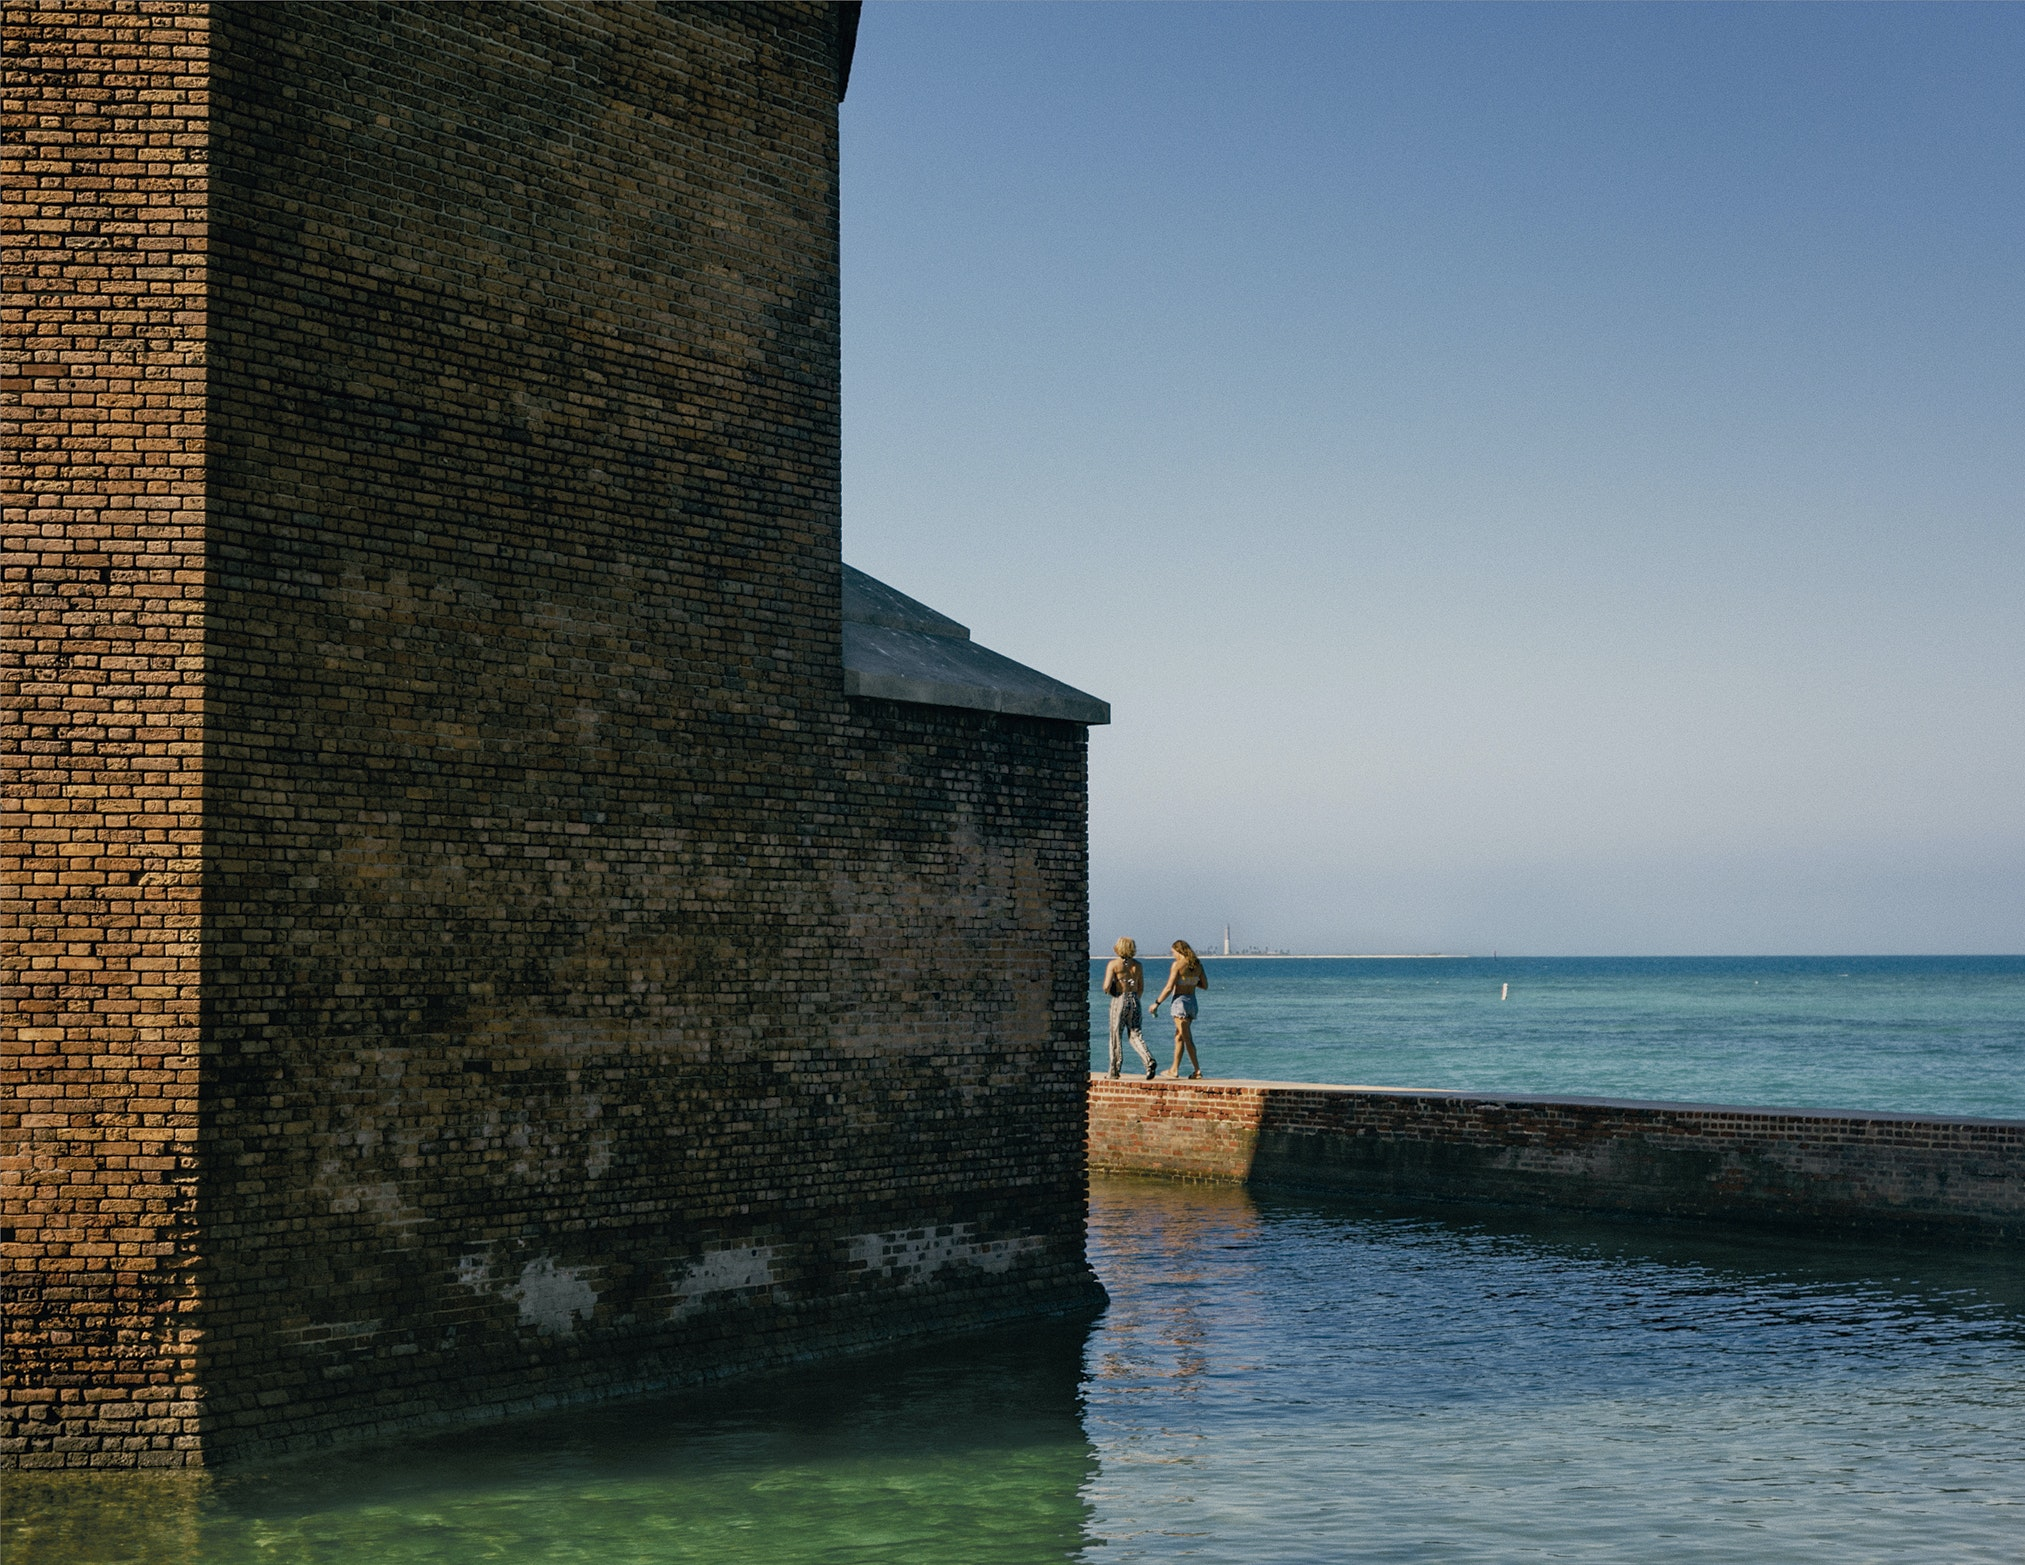 Dry Tortugas is home to Fort Jefferson, a massive brick hexagon built in the 1800s.